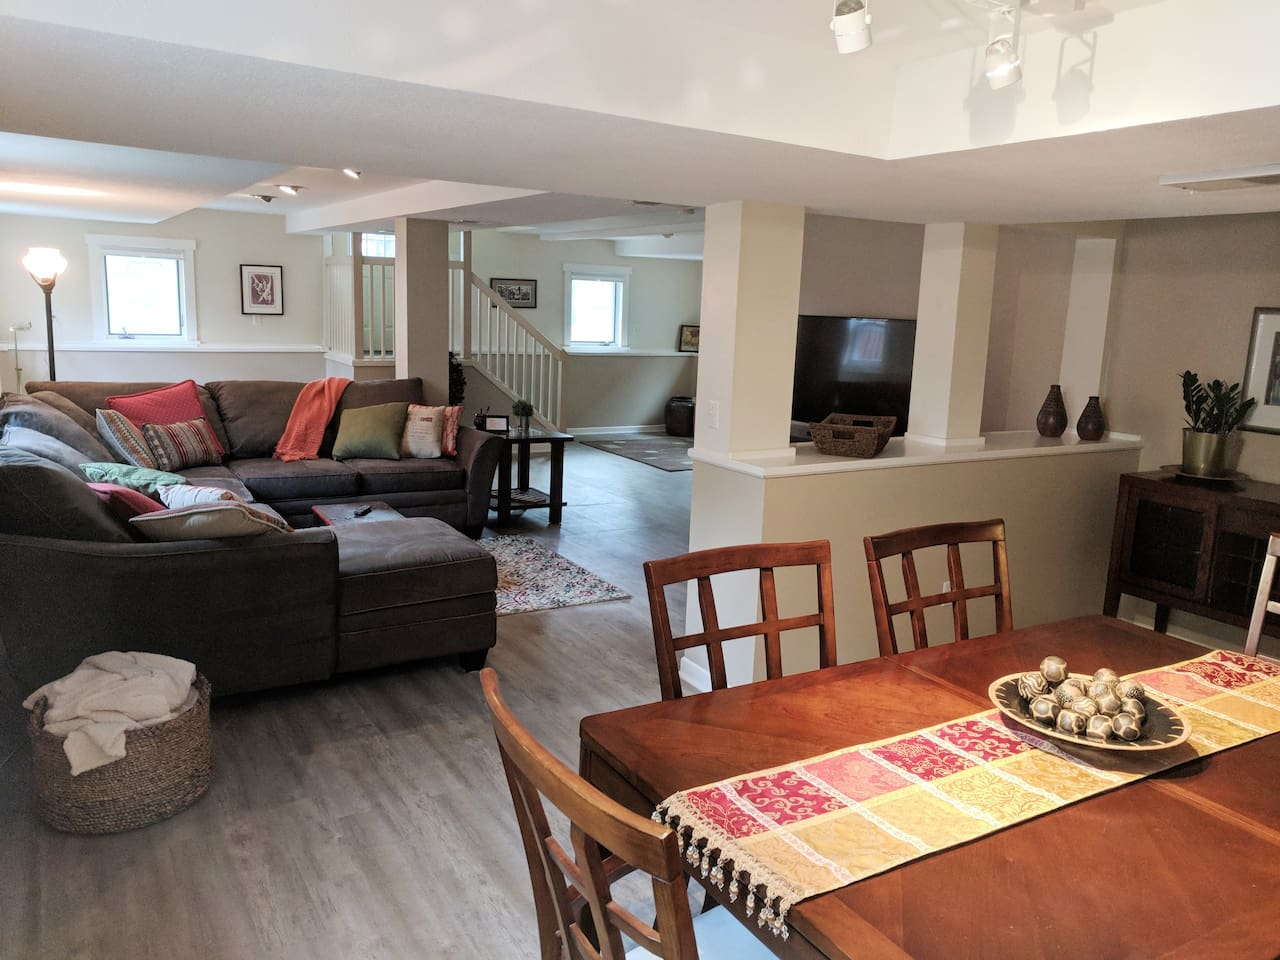 Large comfortable couch and dining for 6